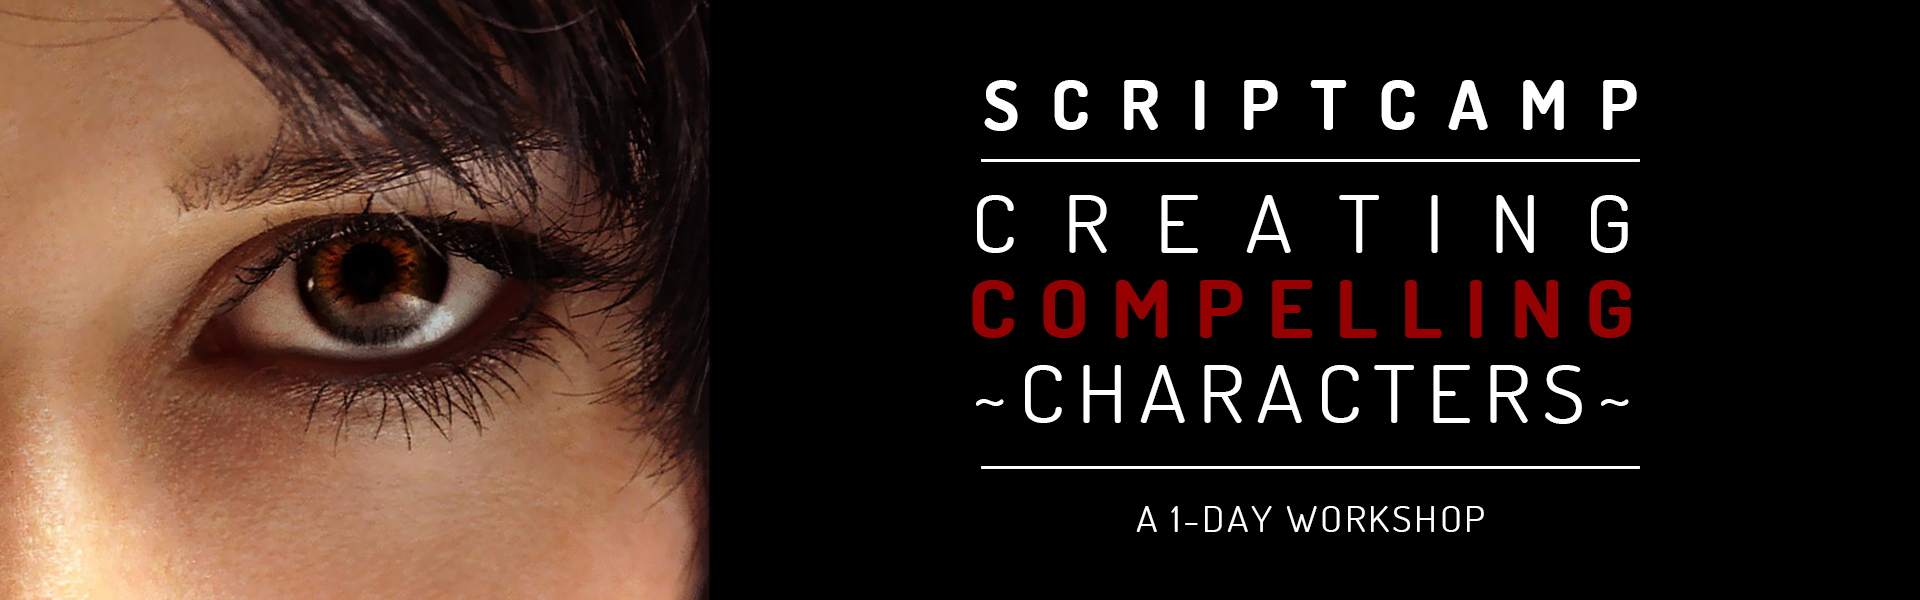 CH_Slider_ScriptCamp_CreatingCompellingCharacters_1920x400